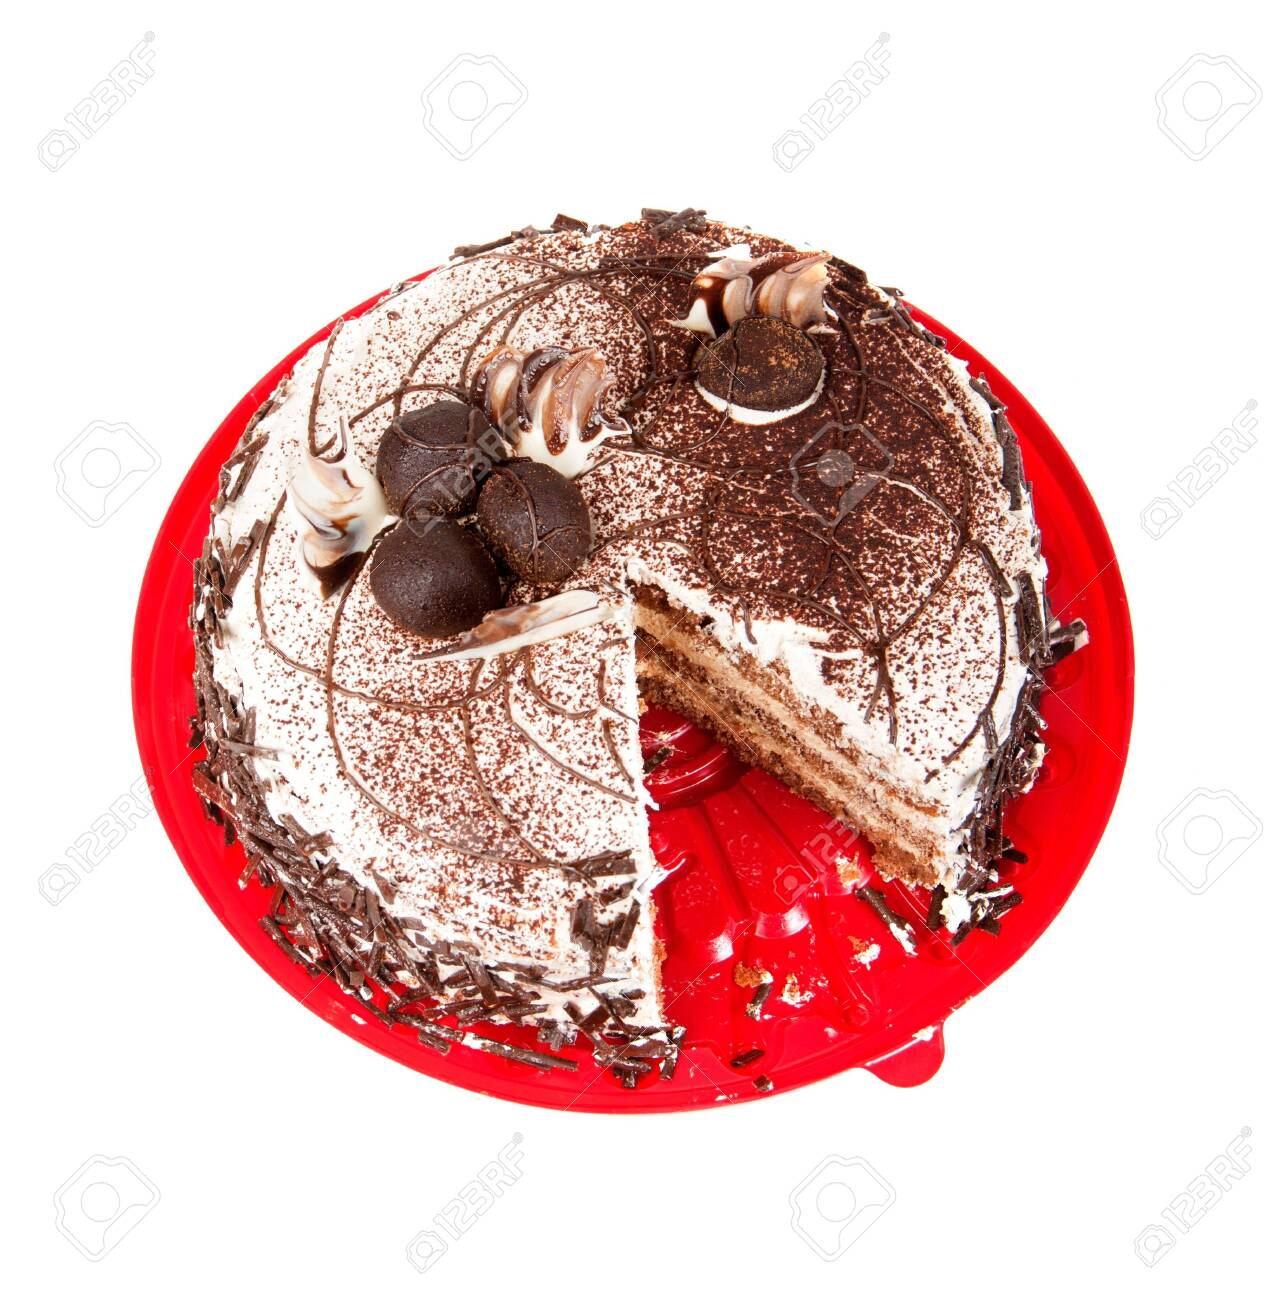 cake chocolate on red plate Stock Photo - 17446584